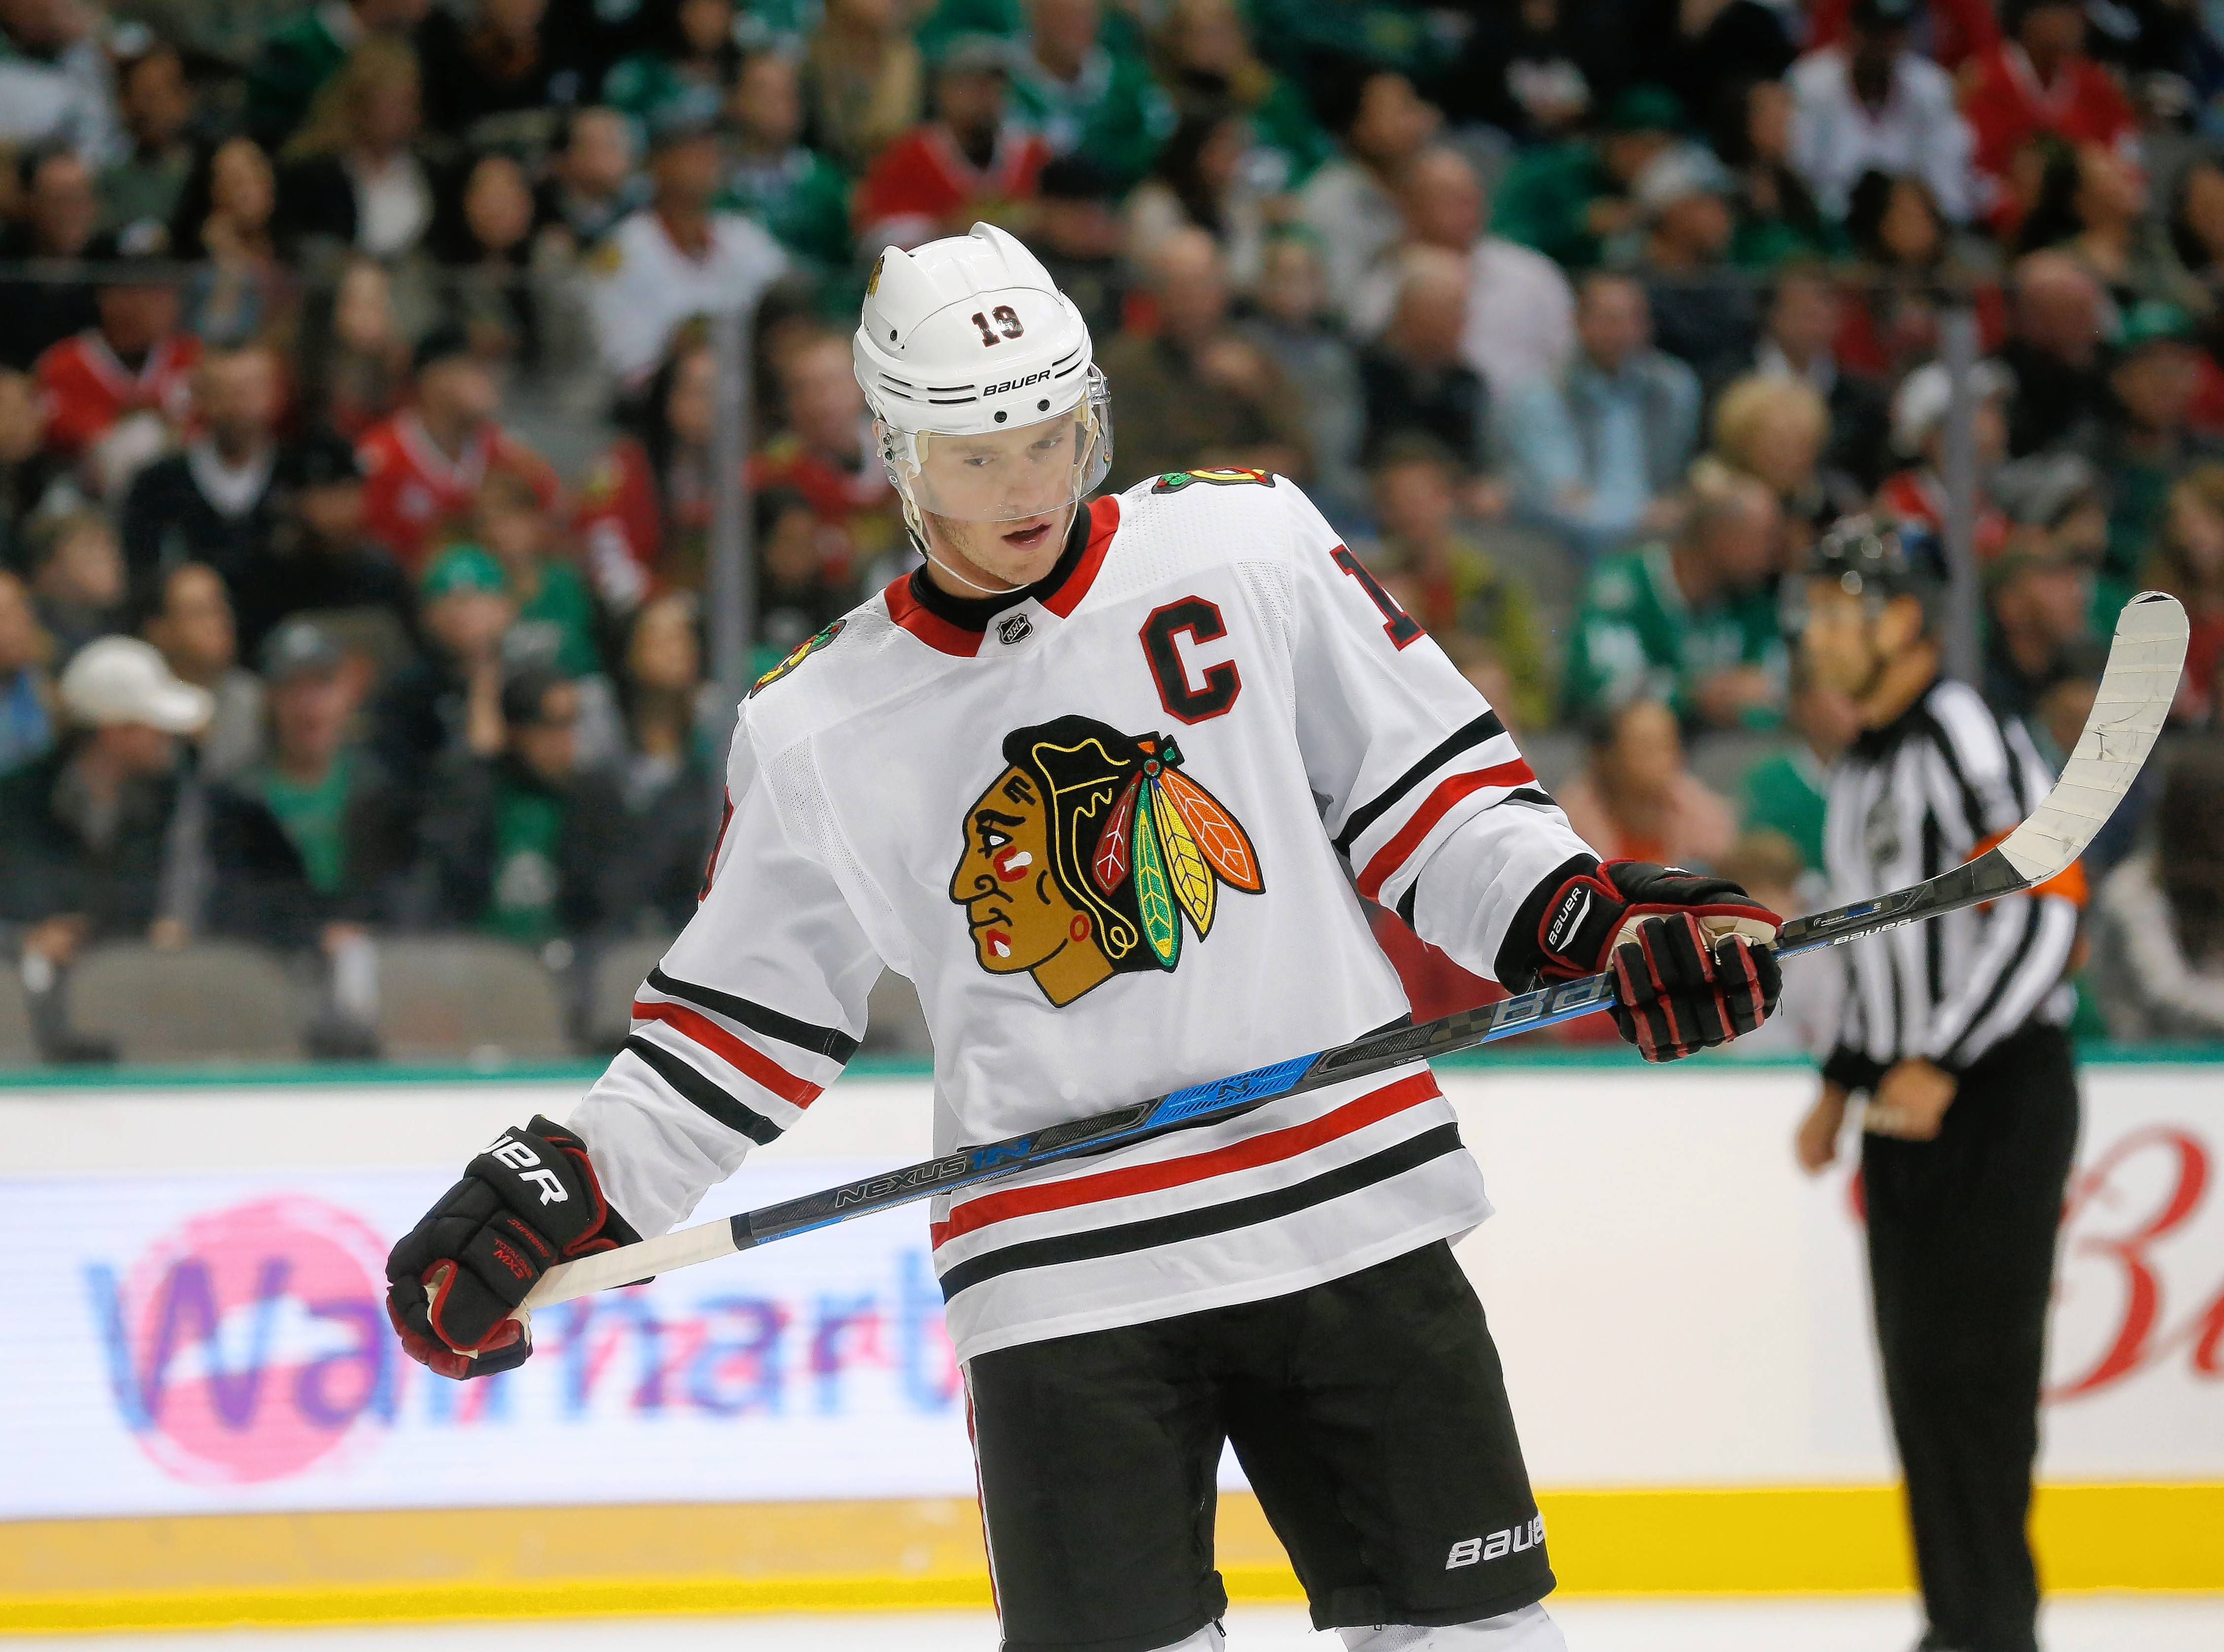 Chicago Blackhawks center Jonathan Toews (19) prepares for a face-off against the Dallas Stars during the first period of an NHL hockey game in Dallas, Thursday, Dec. 21, 2017.